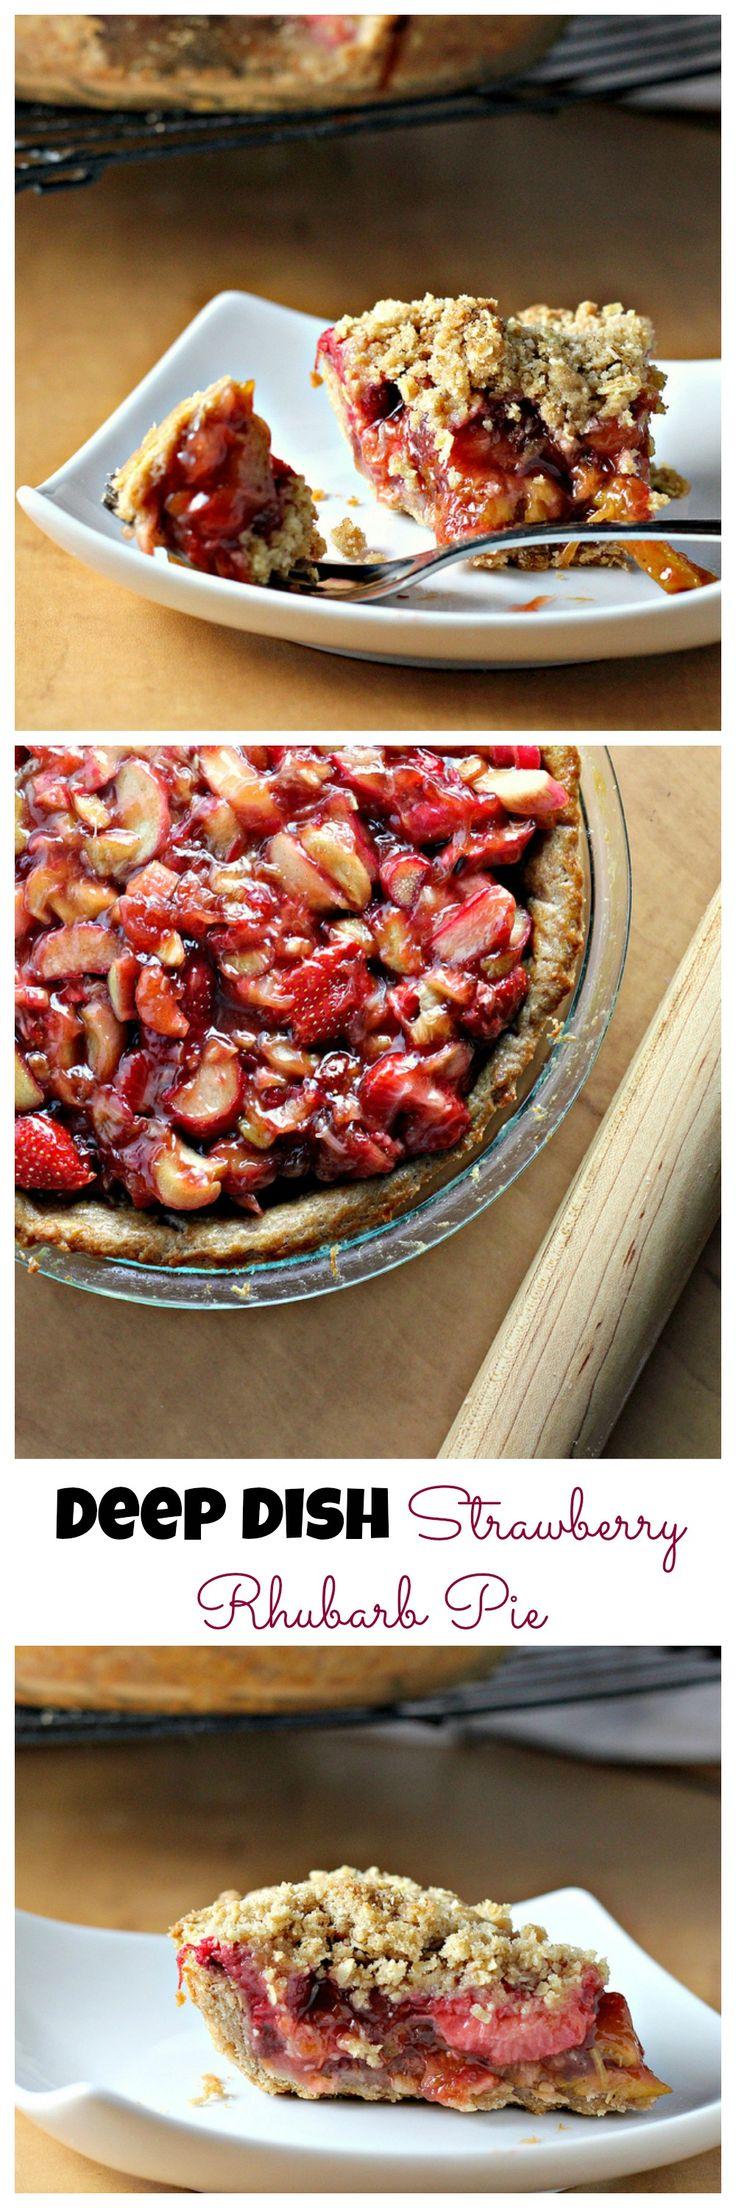 deep-dish strawberry rhubarb pie with crumb topping